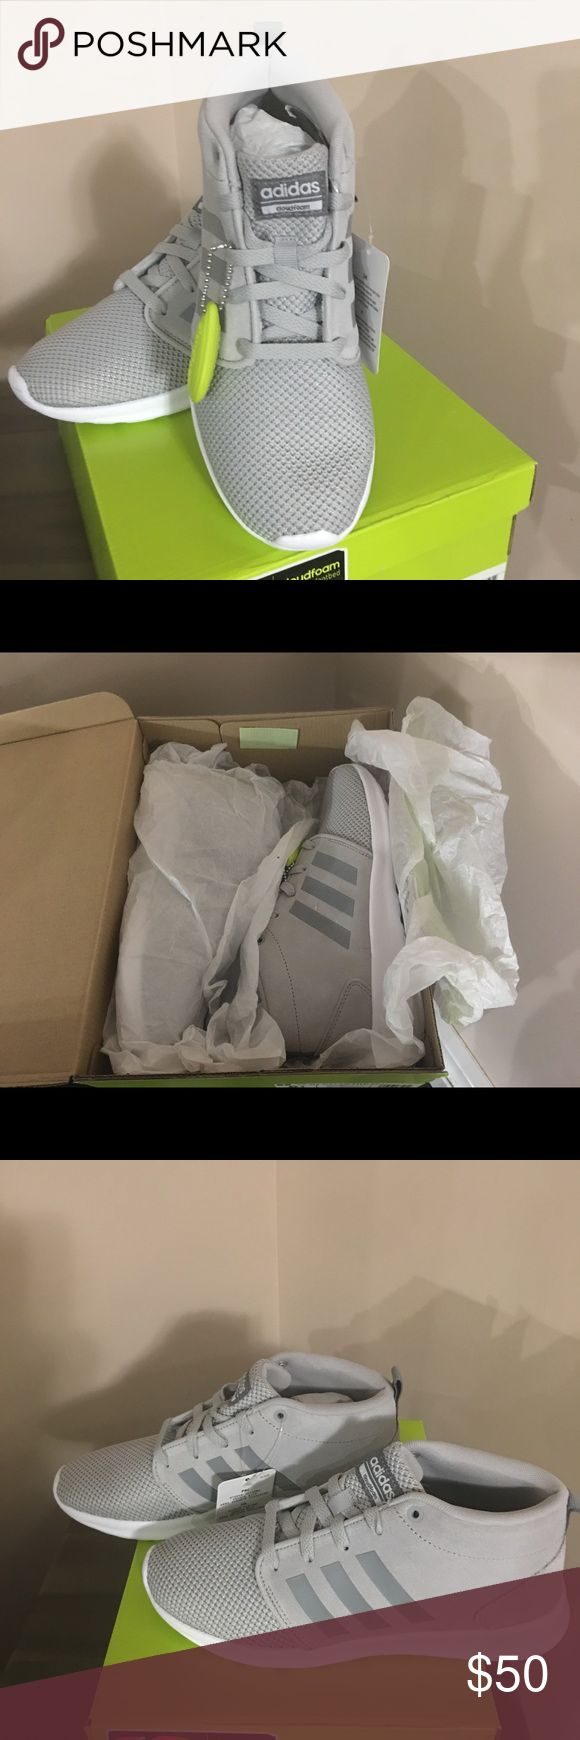 Adidas's women's sneakers Size 6/12 Gorgeous  adidas women's sneakers size 6/12 . But these sneakers run half a size larger so they are size 7. adidas Shoes Sneakers